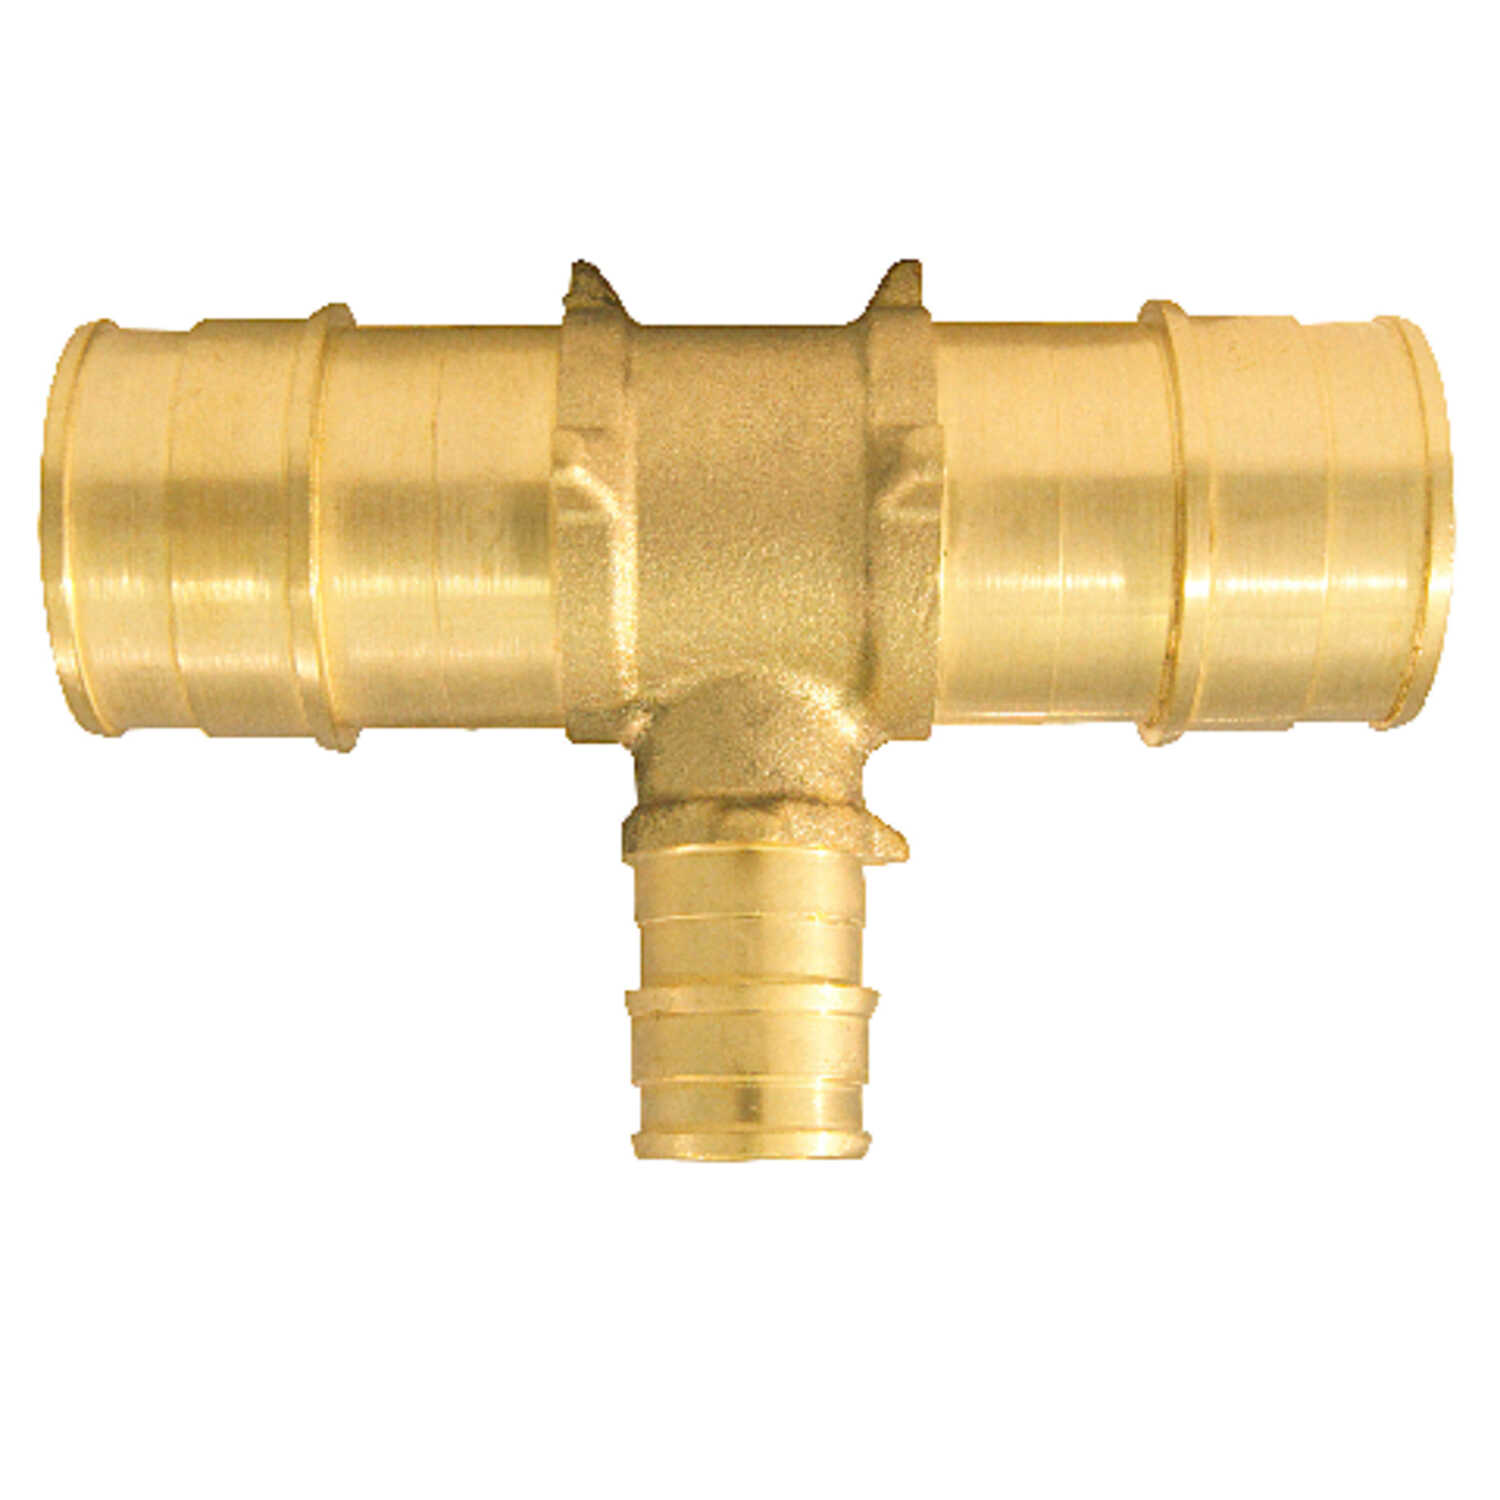 Apollo  PEX / Pex A  1 in. 1 in. Dia. x PEX Barb   PEX  Tee  Brass